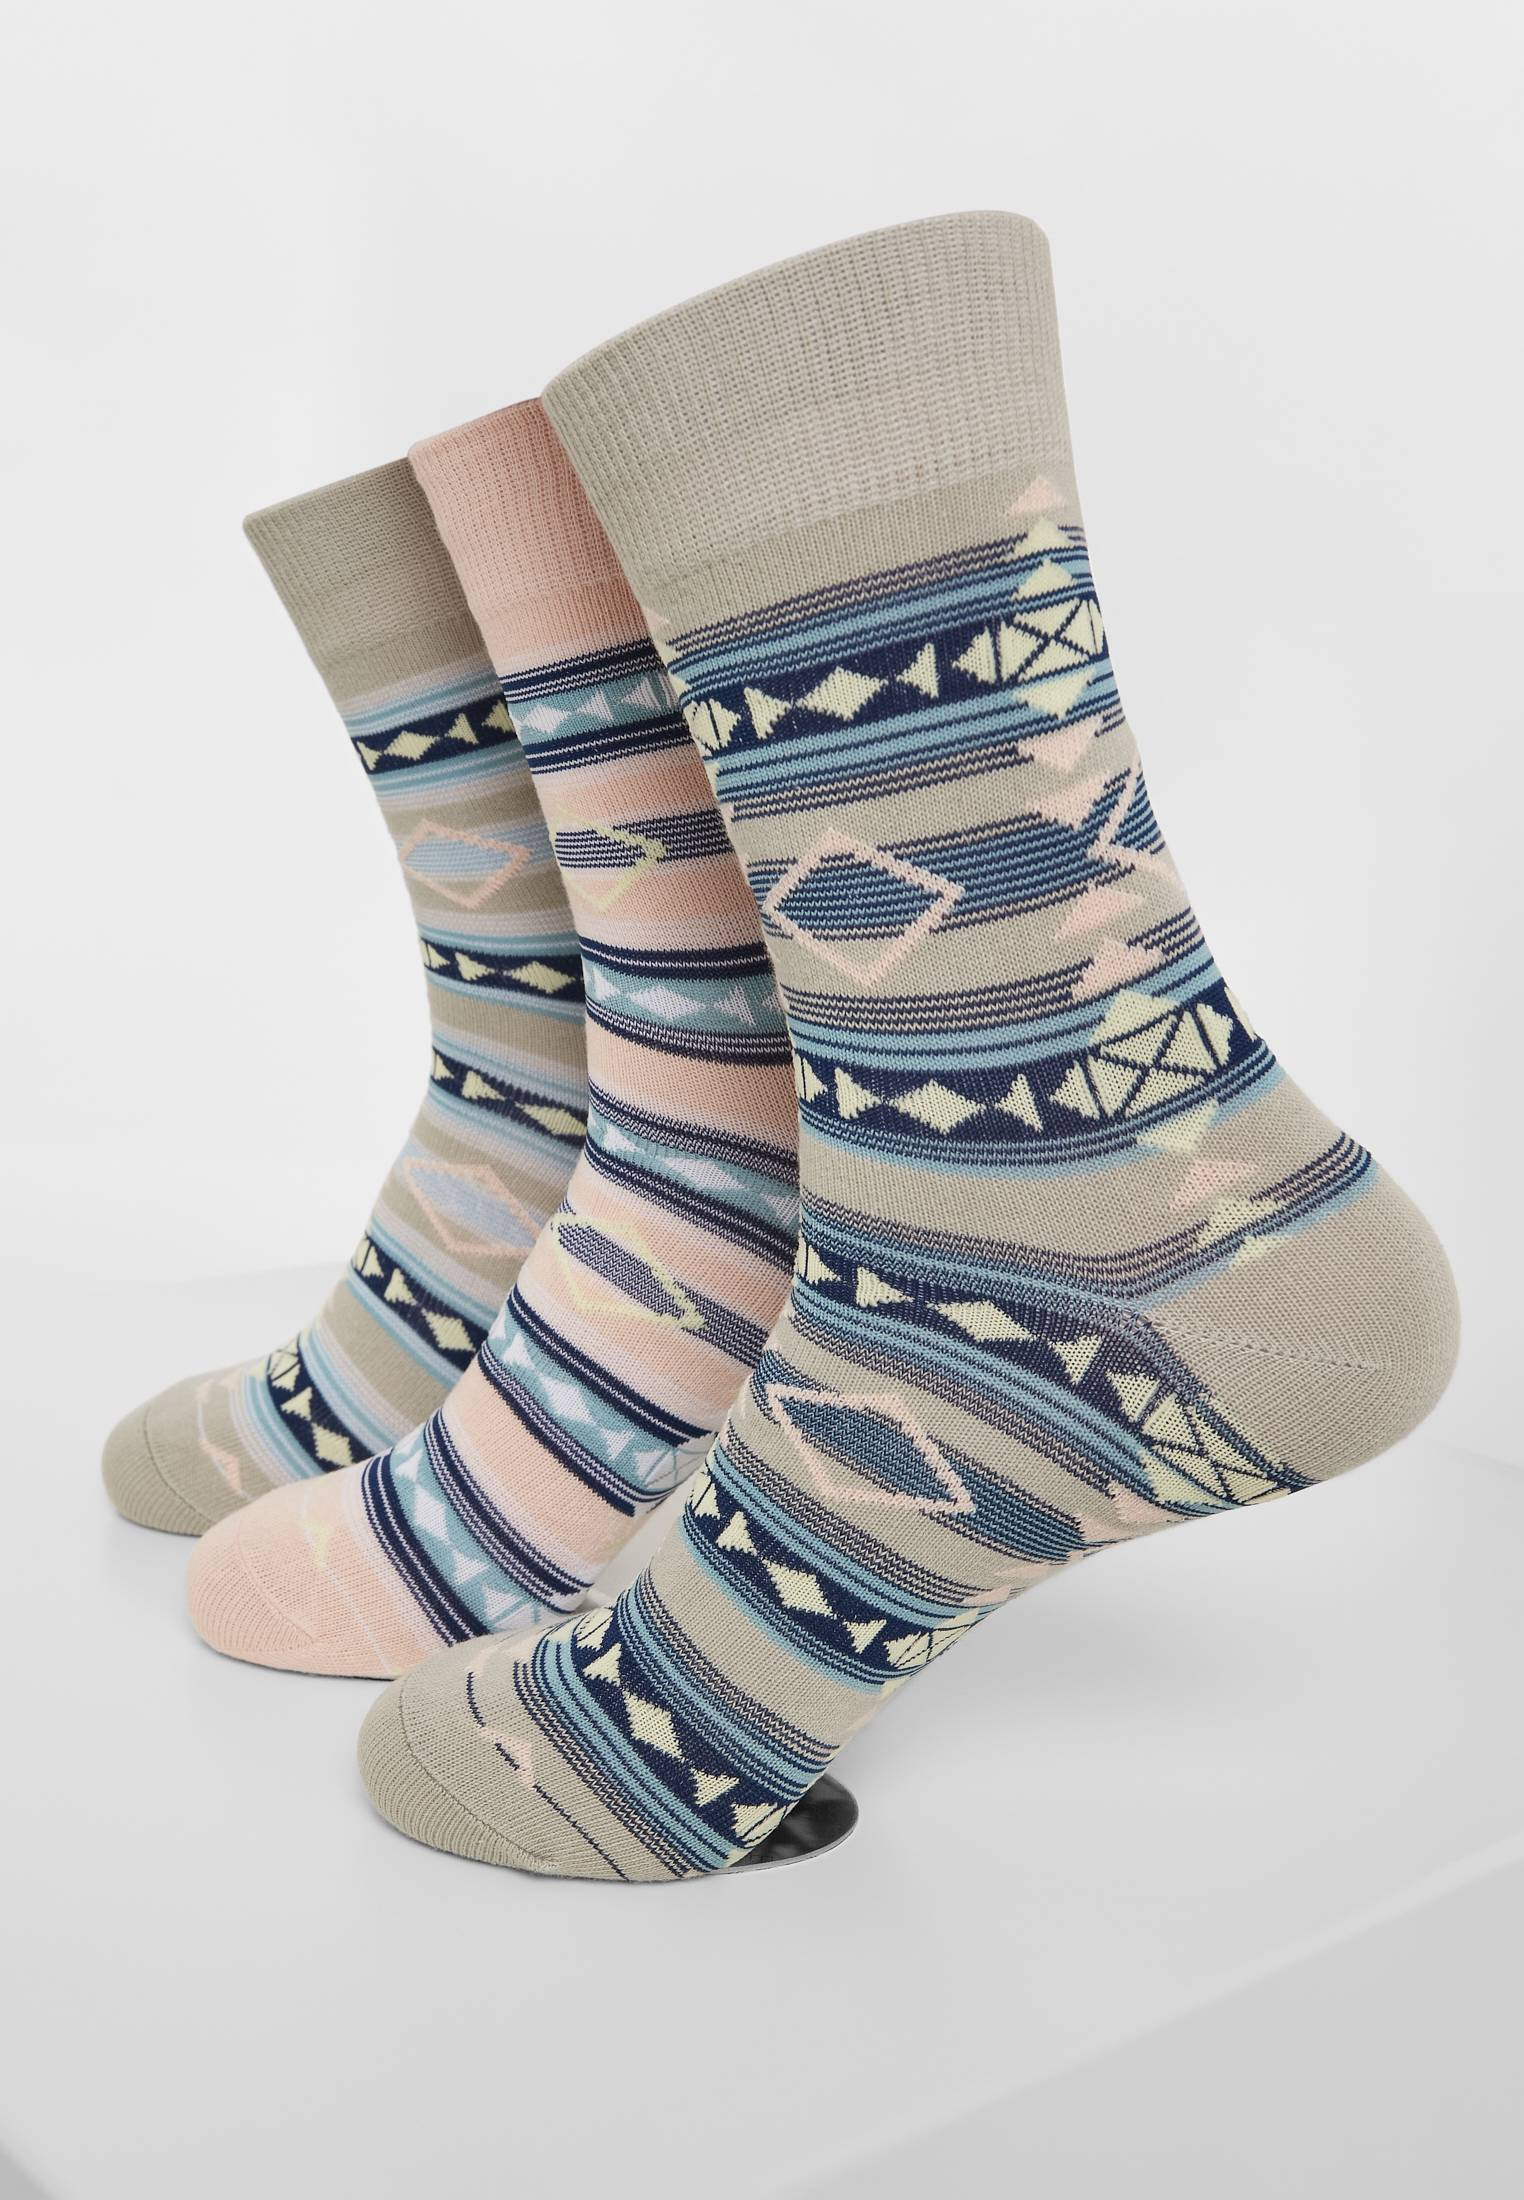 Inka Socks 3-Pack multicolor - 39-42